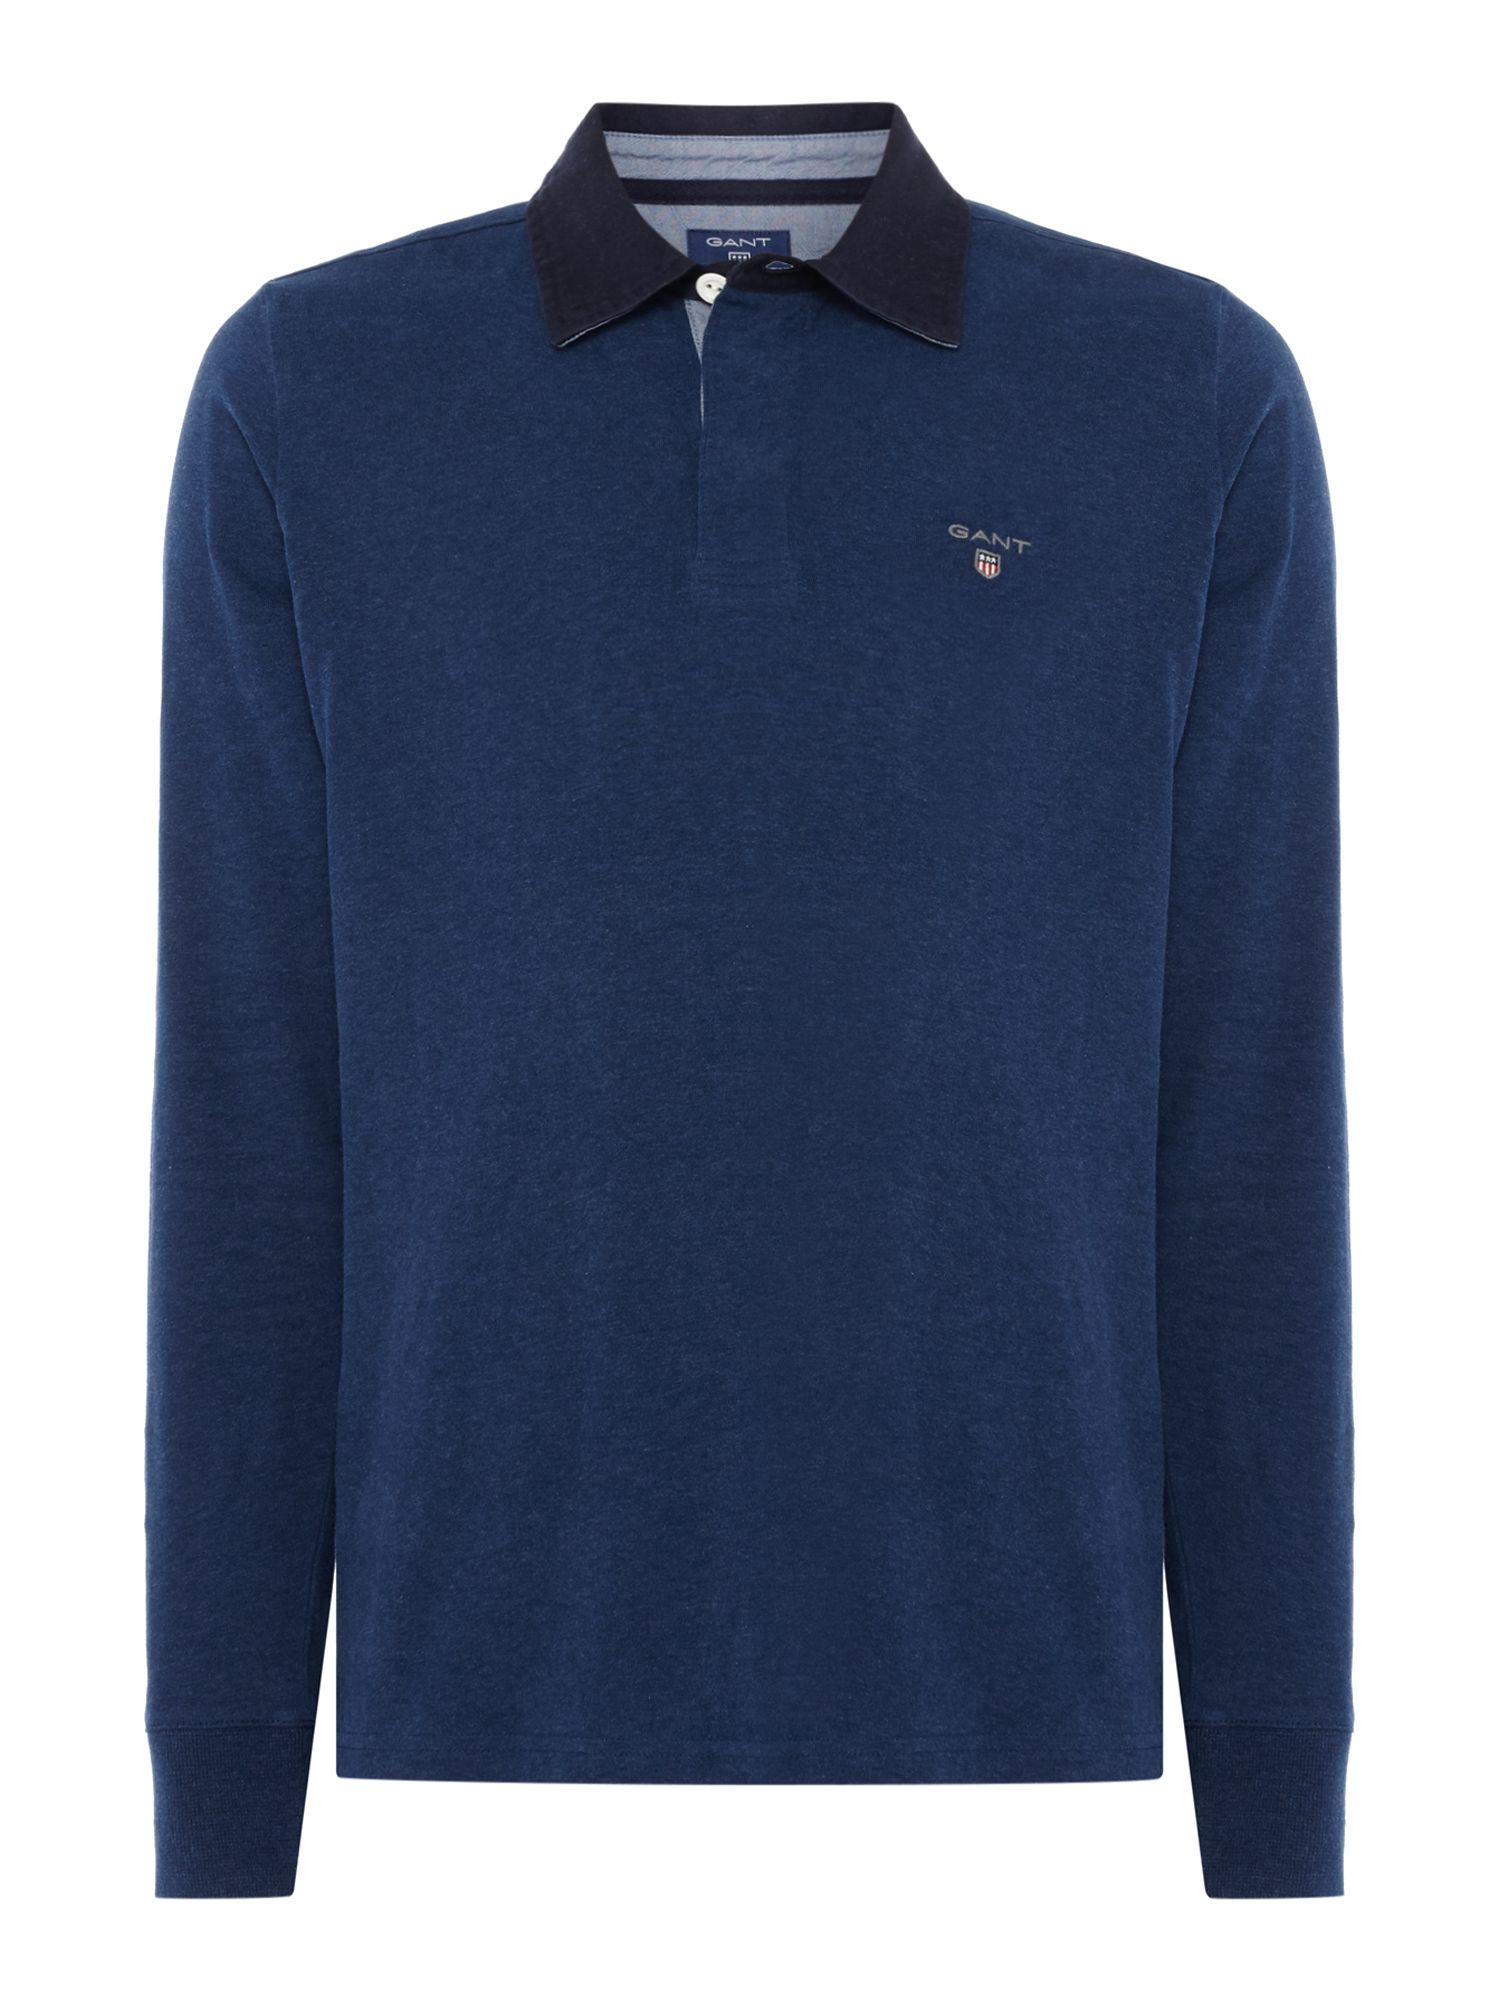 Men's Gant The Original Heavy Rugger, Indigo